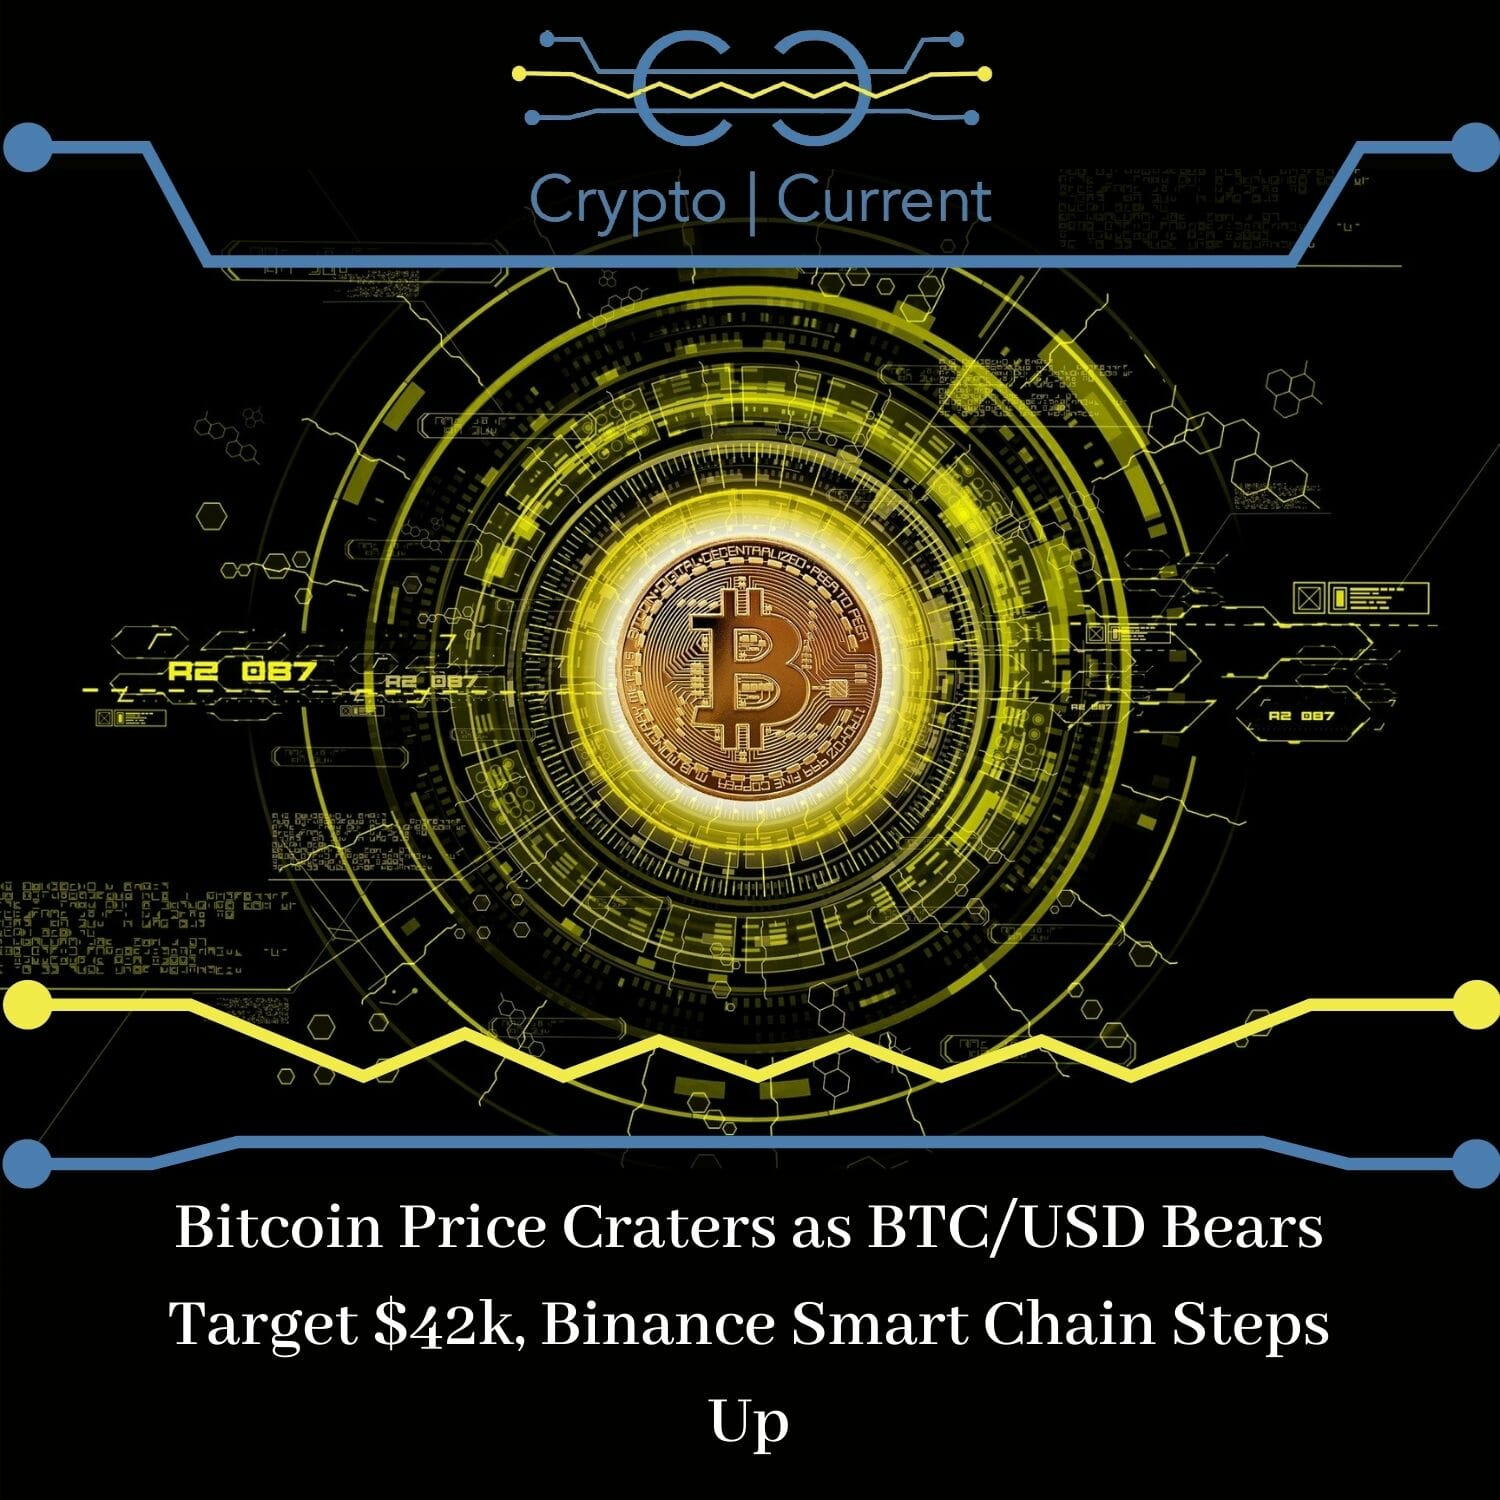 Bitcoin Price Craters as BTC/USD Bears Target $42k, Binance Smart Chain Steps Up